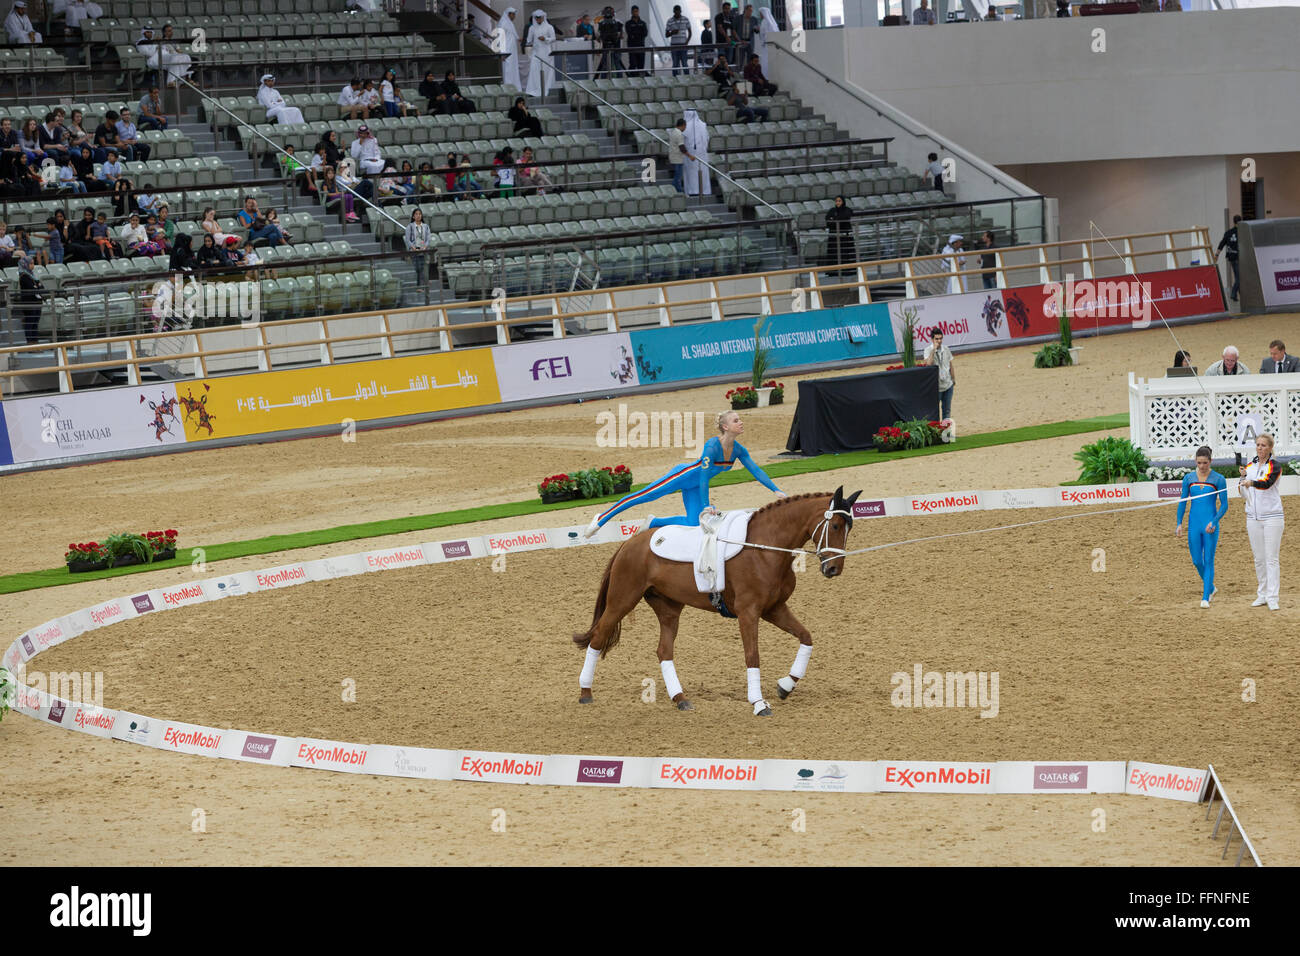 Vaulting competition CHI Al Shaqab 2014 and spectators. - Stock Image